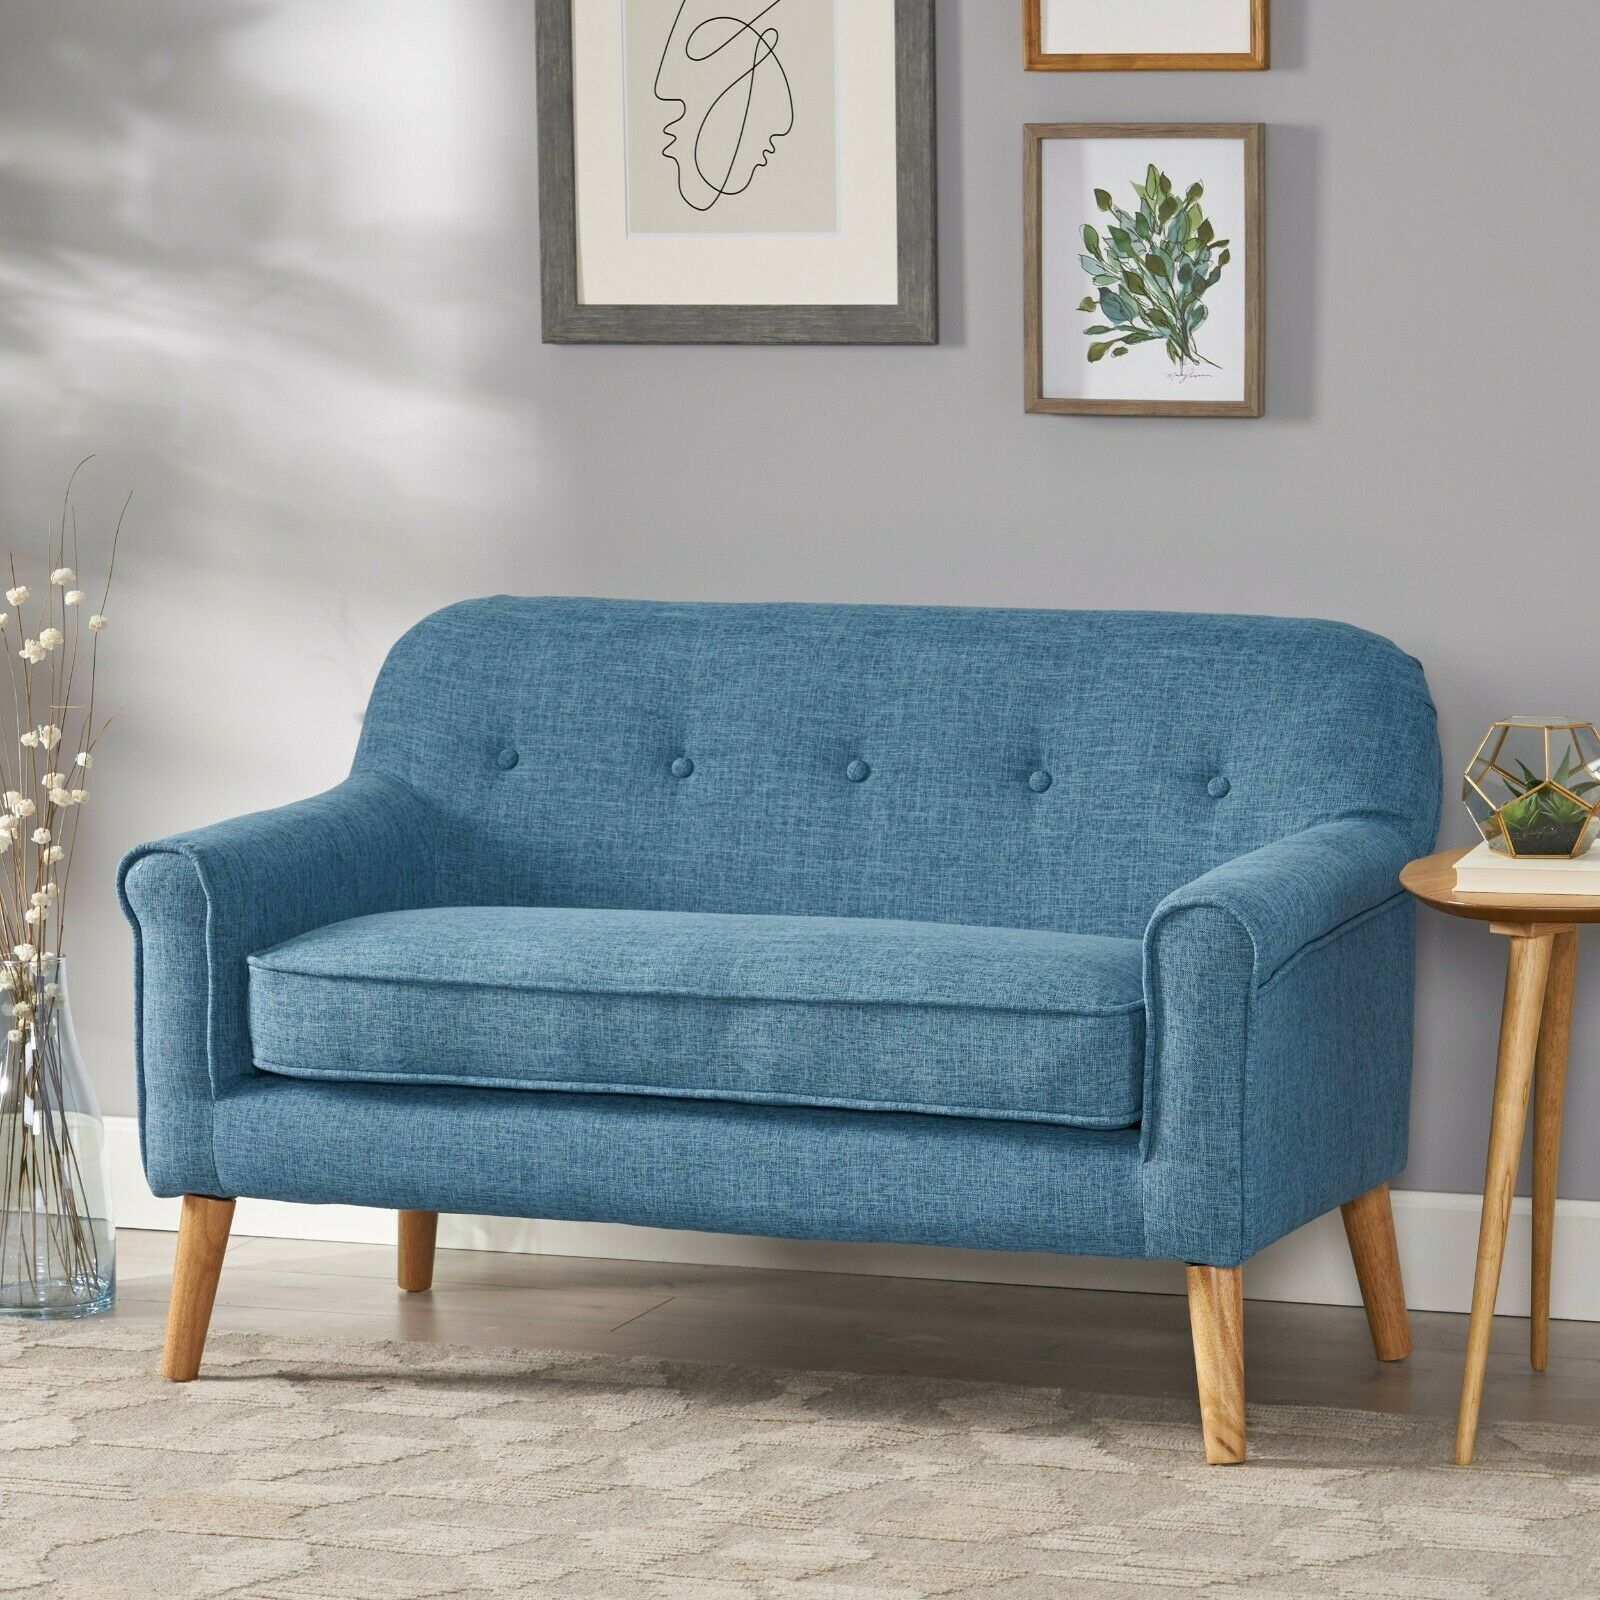 Mia Mid-Century Modern Button Tufted Fabric Upholstered Loveseat w/ Tapered Legs Furniture